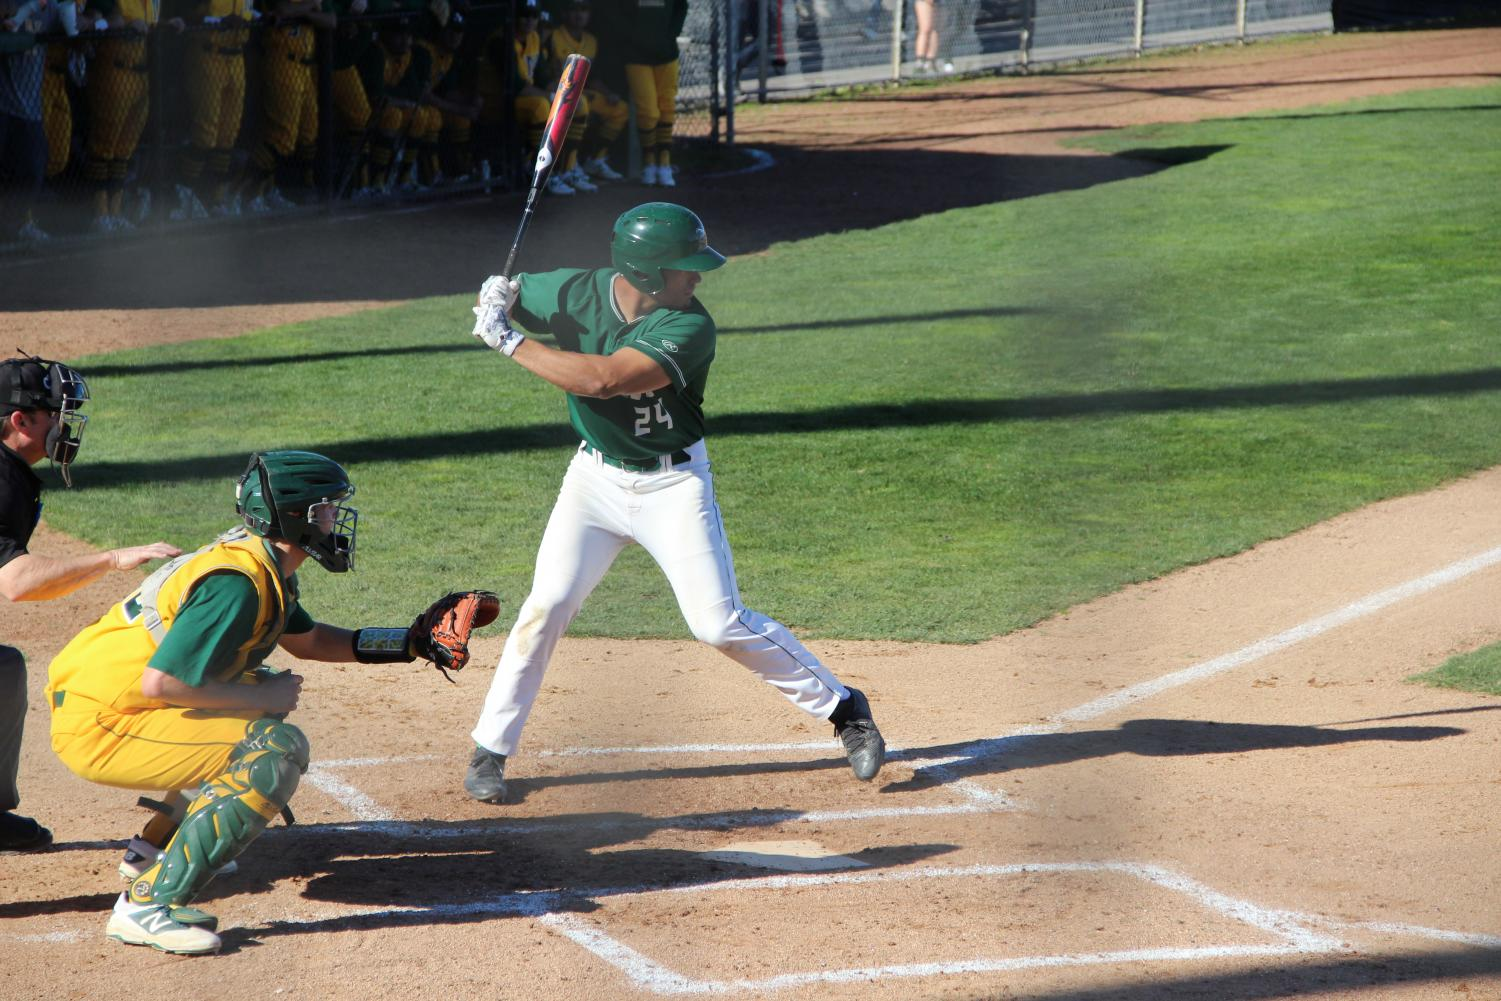 Catcher John Anthon bats in the first inning against Napa Valley College at Diablo Valley College in Pleasant Hill, California on February 6, 2018.